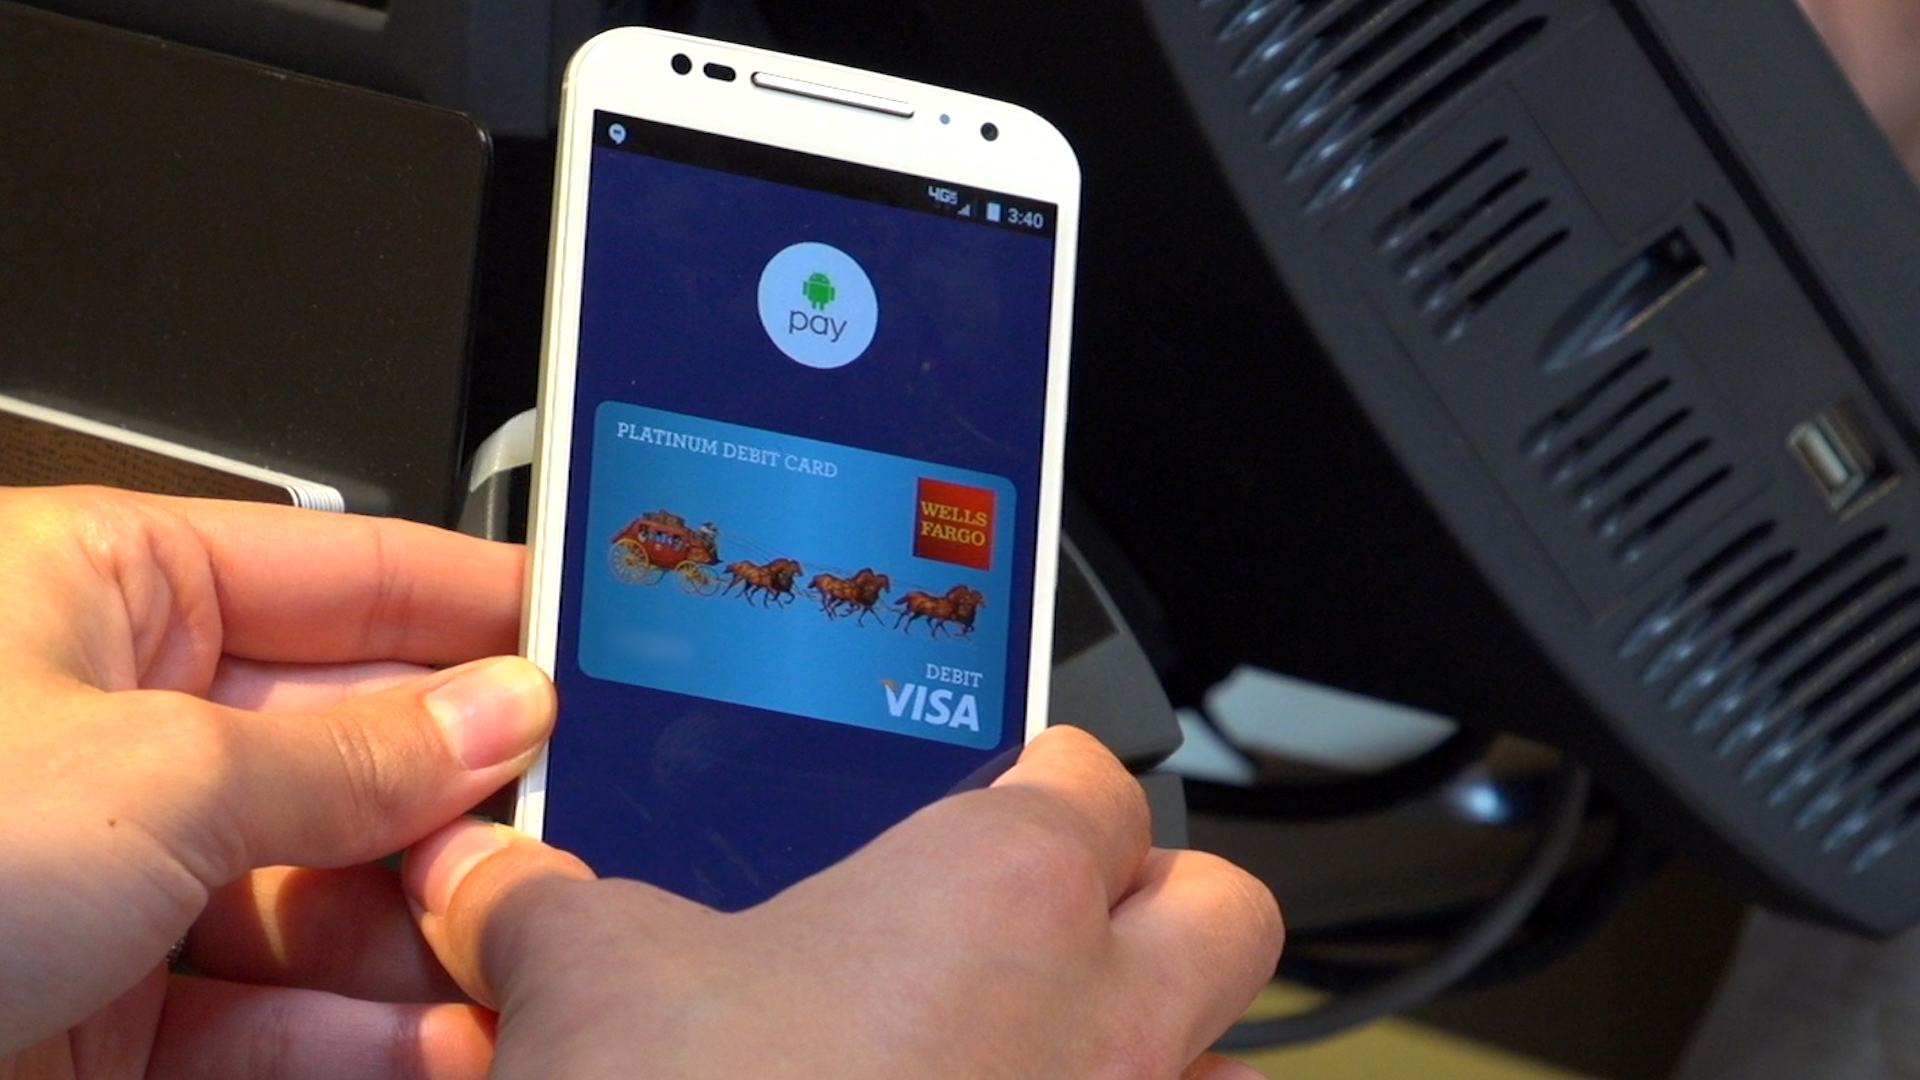 Video: Android Pay vs. Samsung Pay: Explained